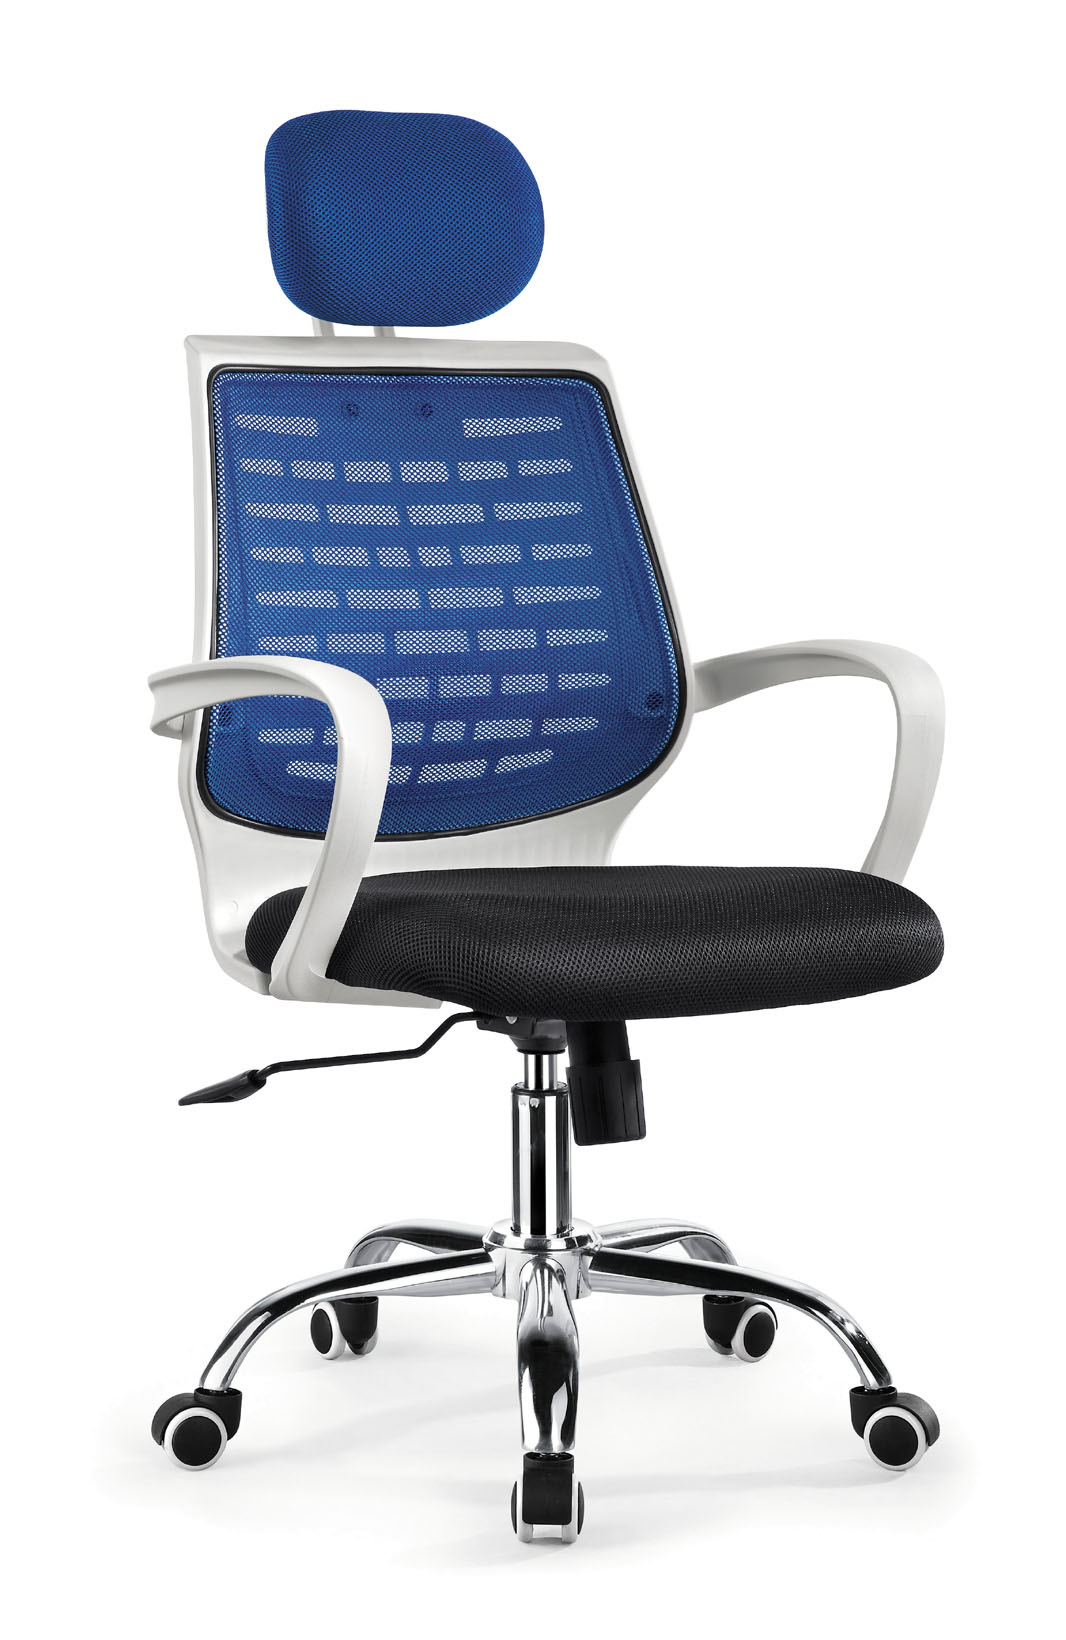 ZHNSMC-07P Neck Support Swivel Office Chair with Mesh Surface and Trapezoid Backrest